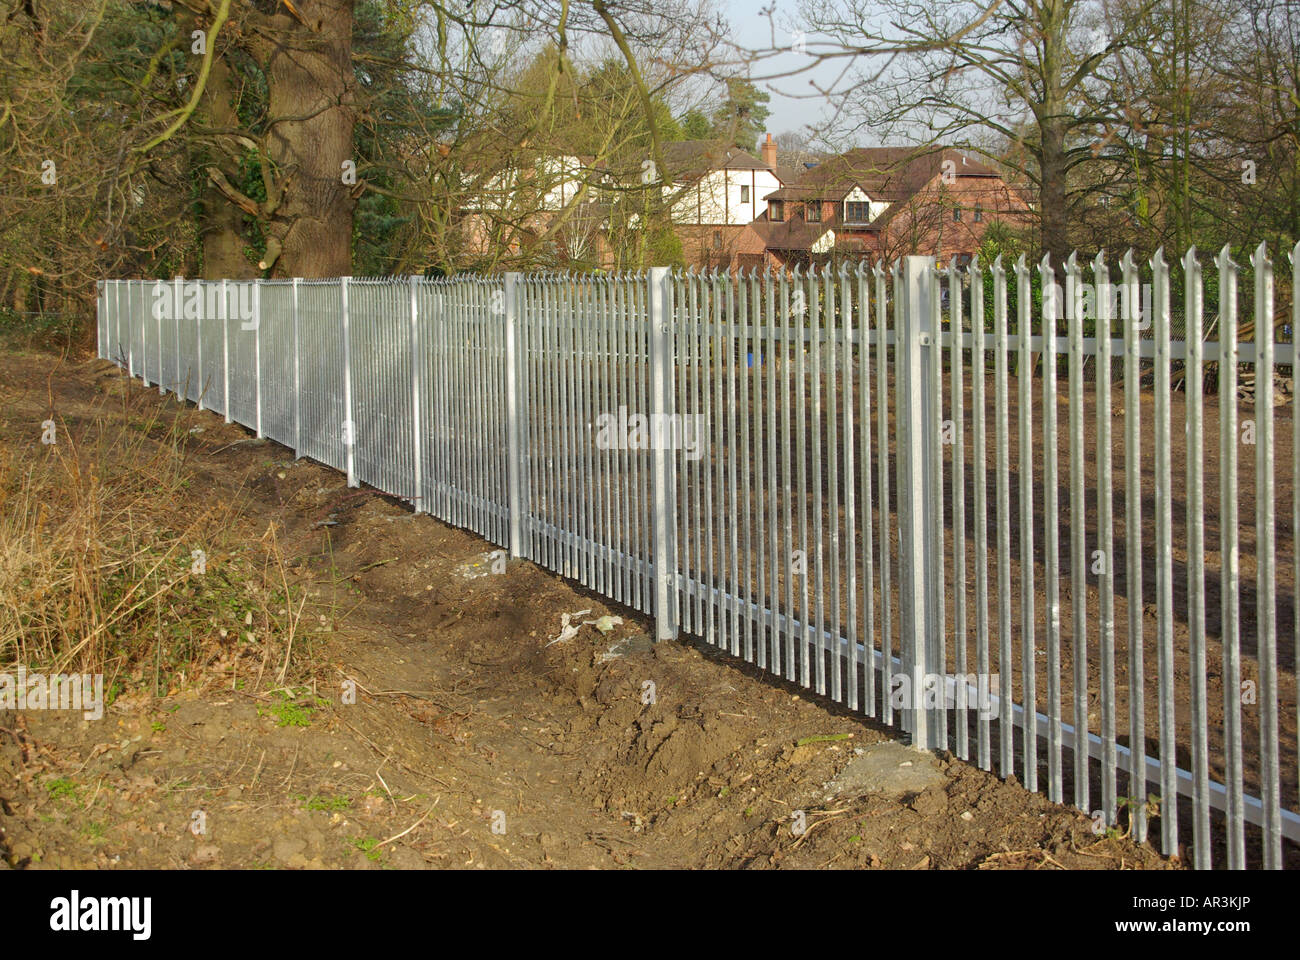 Marvelous photograph of Galvanised Steel Palisade Fence Panels Around Paddock Stock Photo  with #8E703D color and 1300x960 pixels